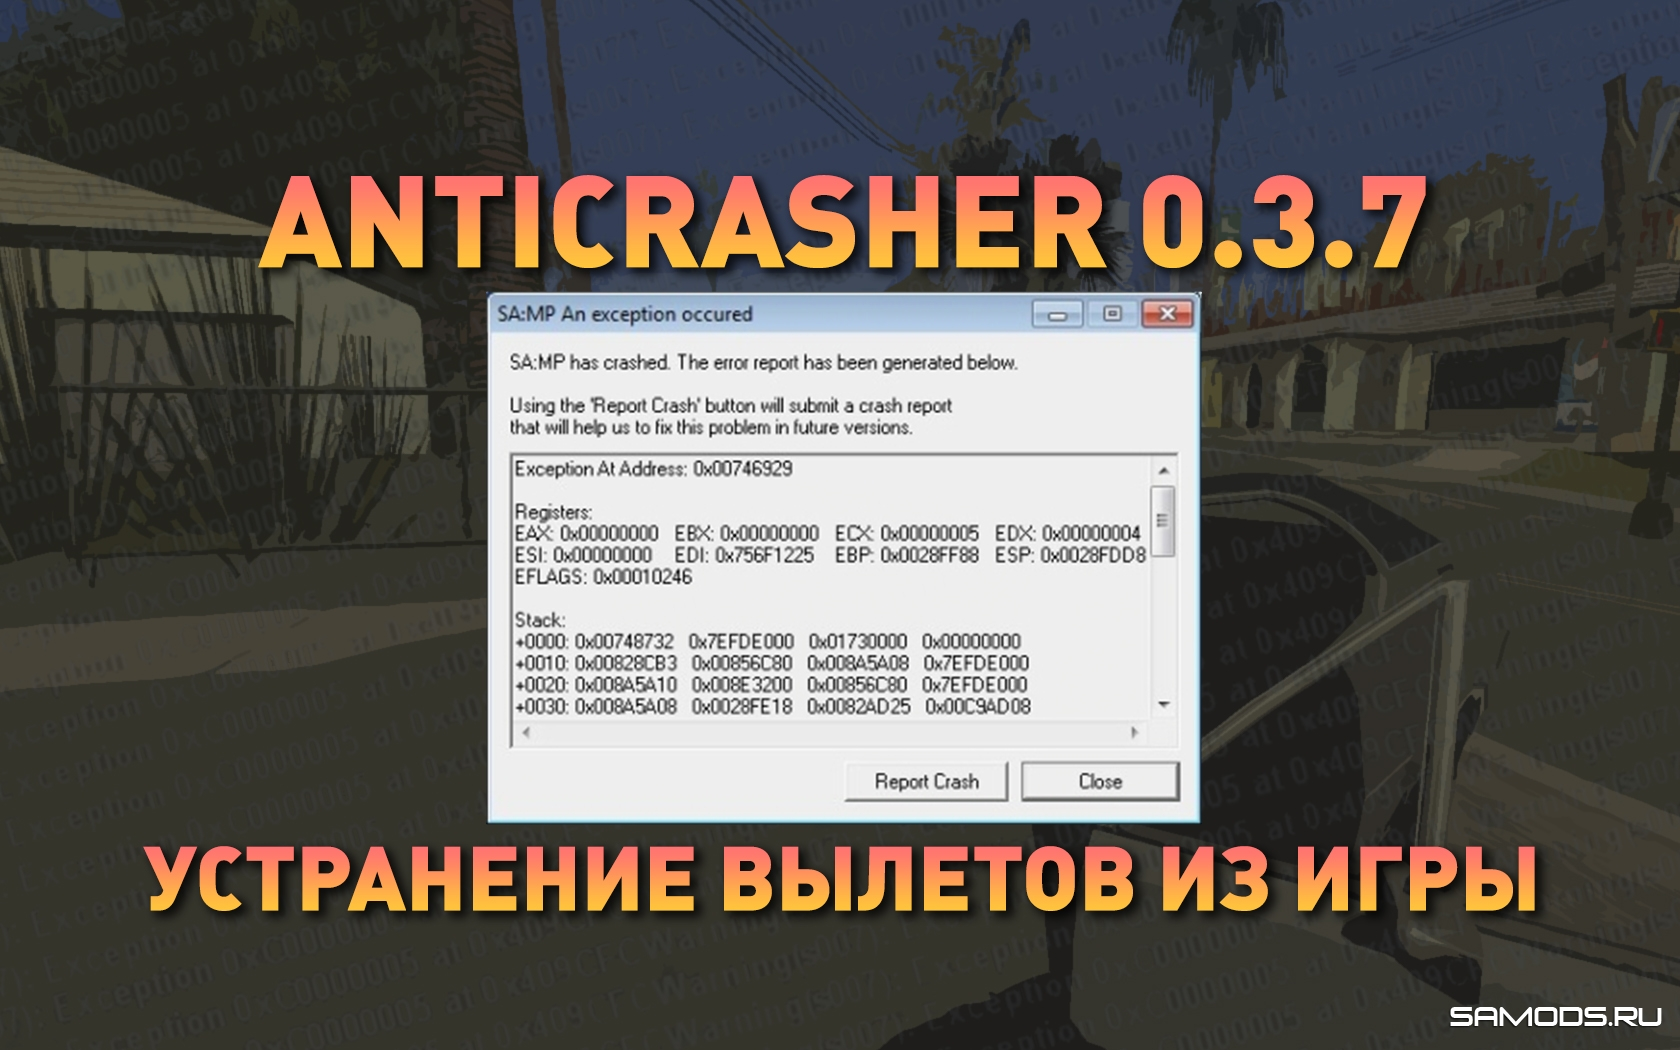 Anticrasher 0.3.7